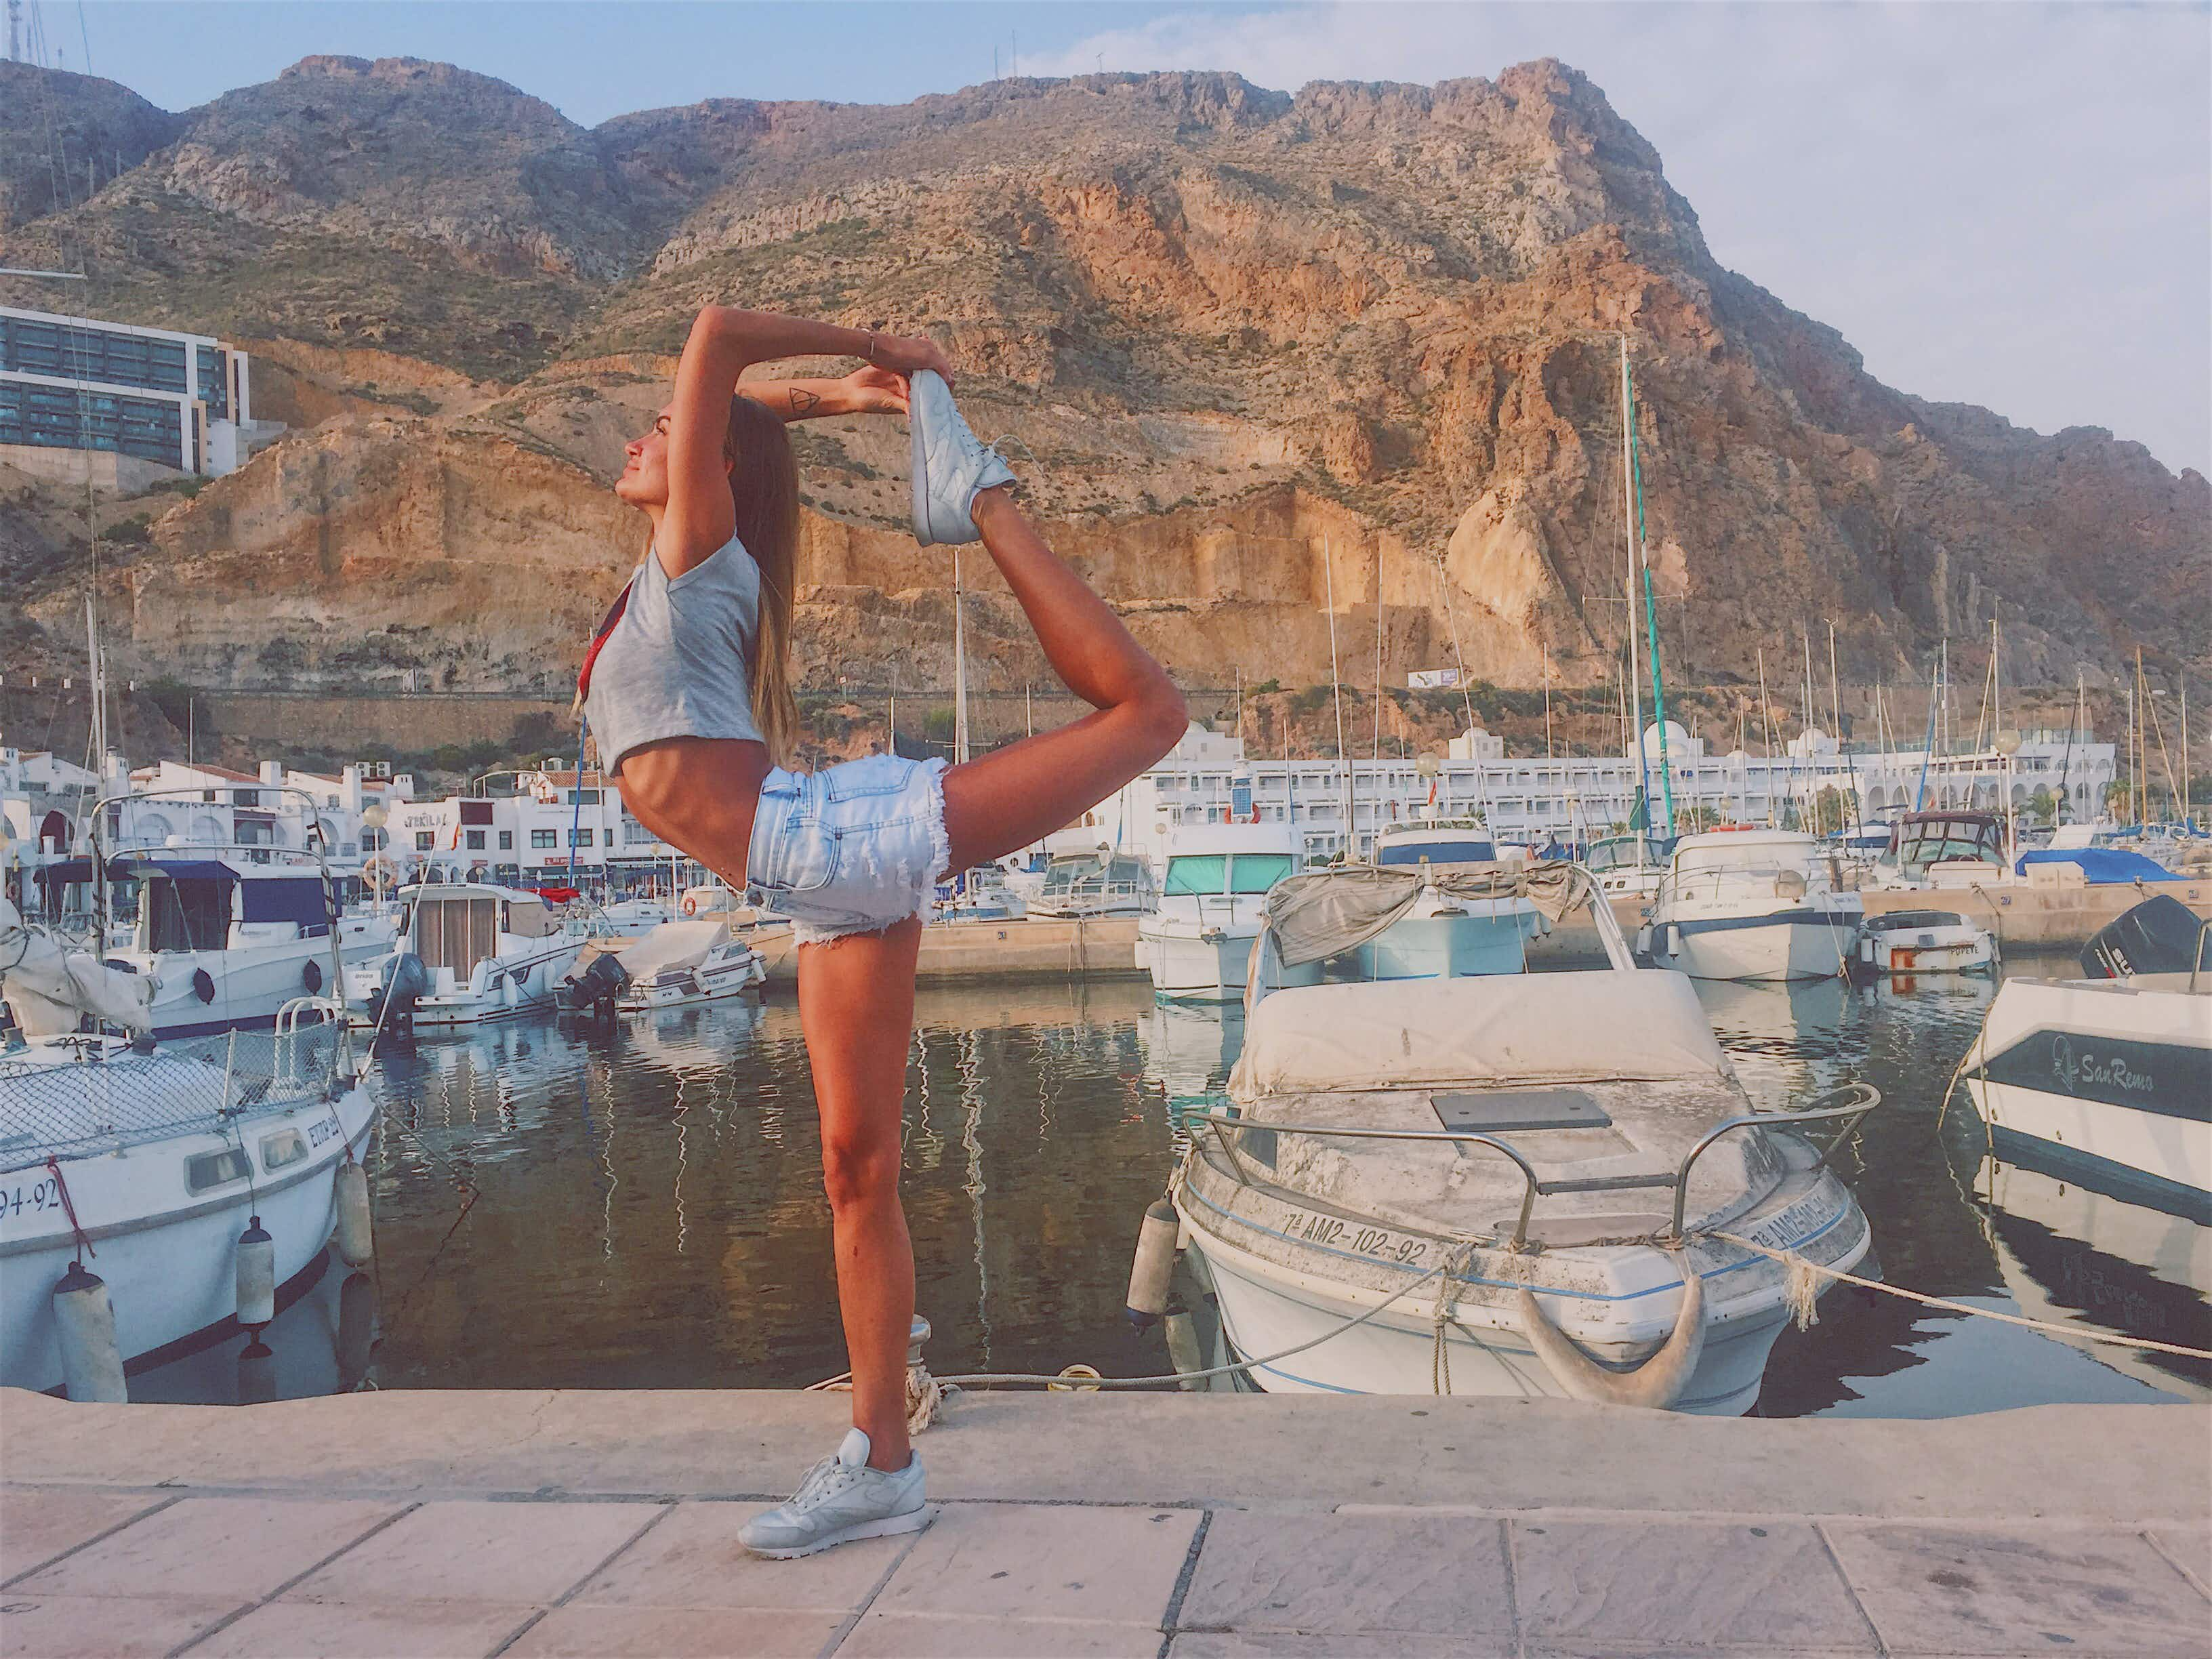 A Russian dancer is travelling the world one yoga pose at a time